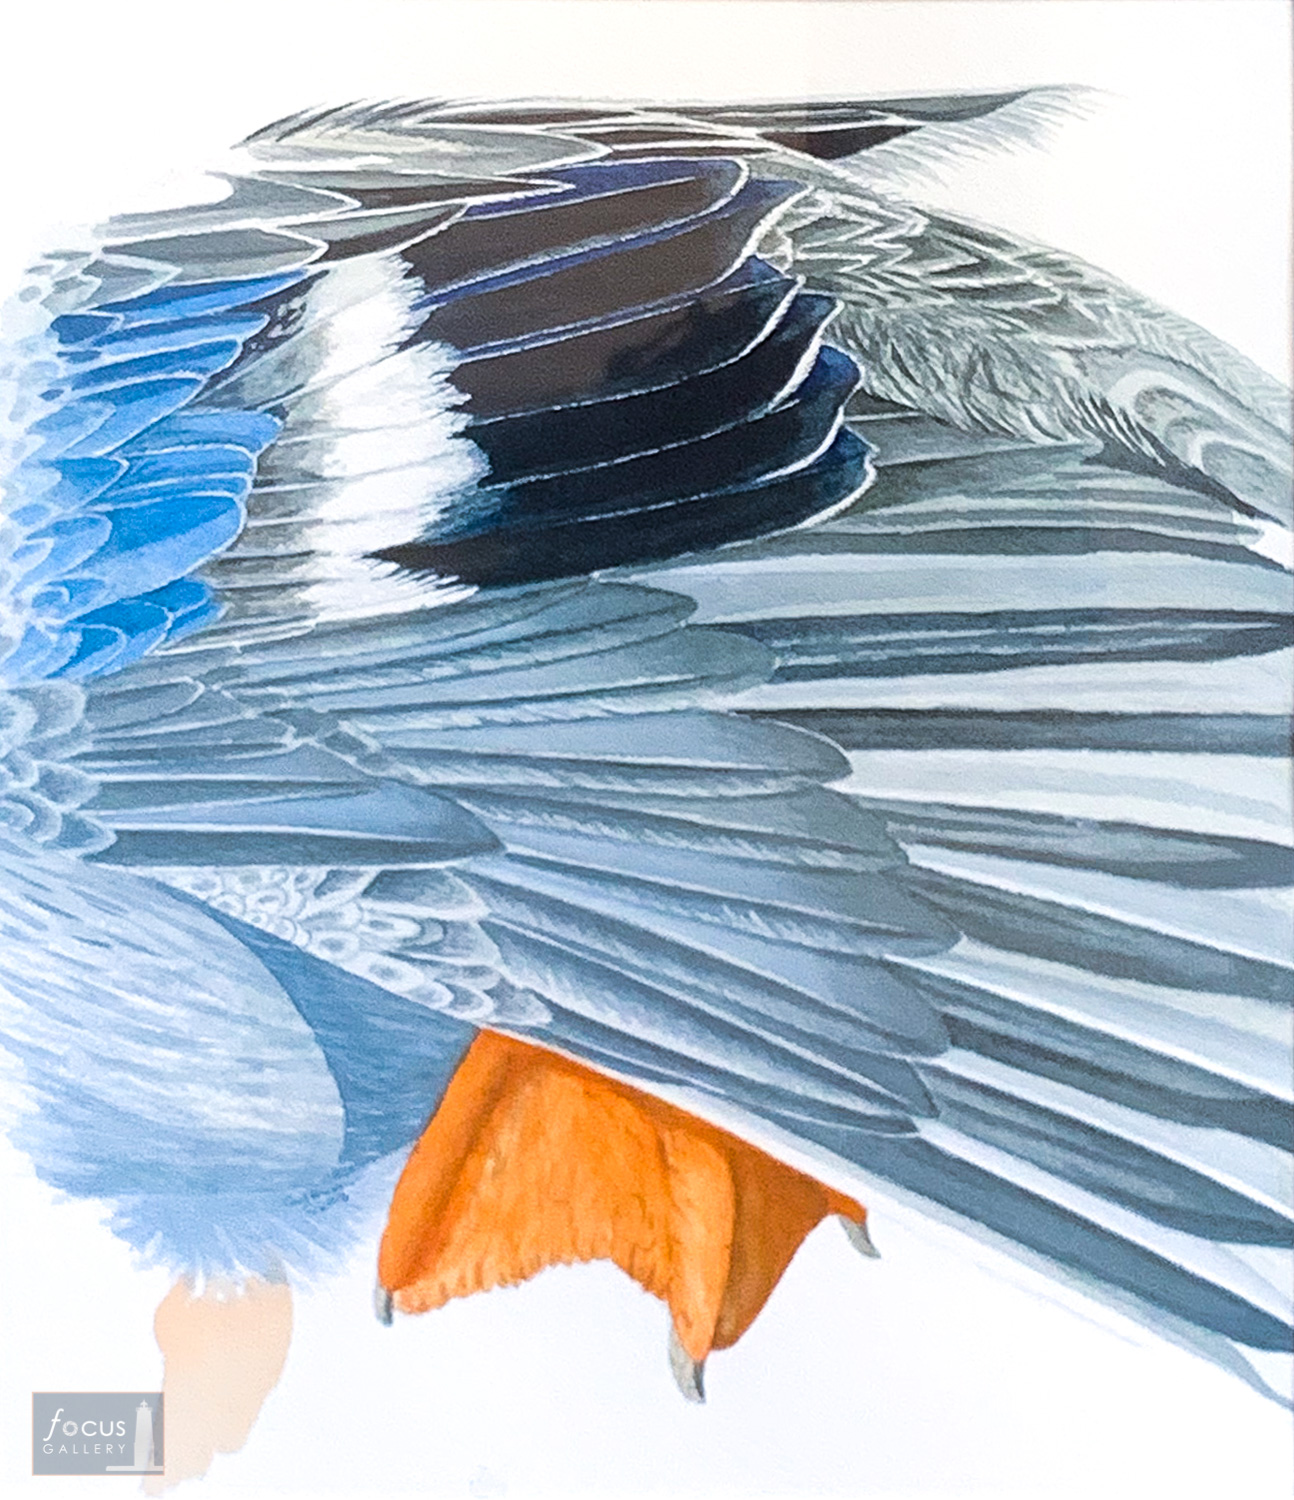 Original watercolor painting of details of the feathers of a Northern Shoveler duck stretching.